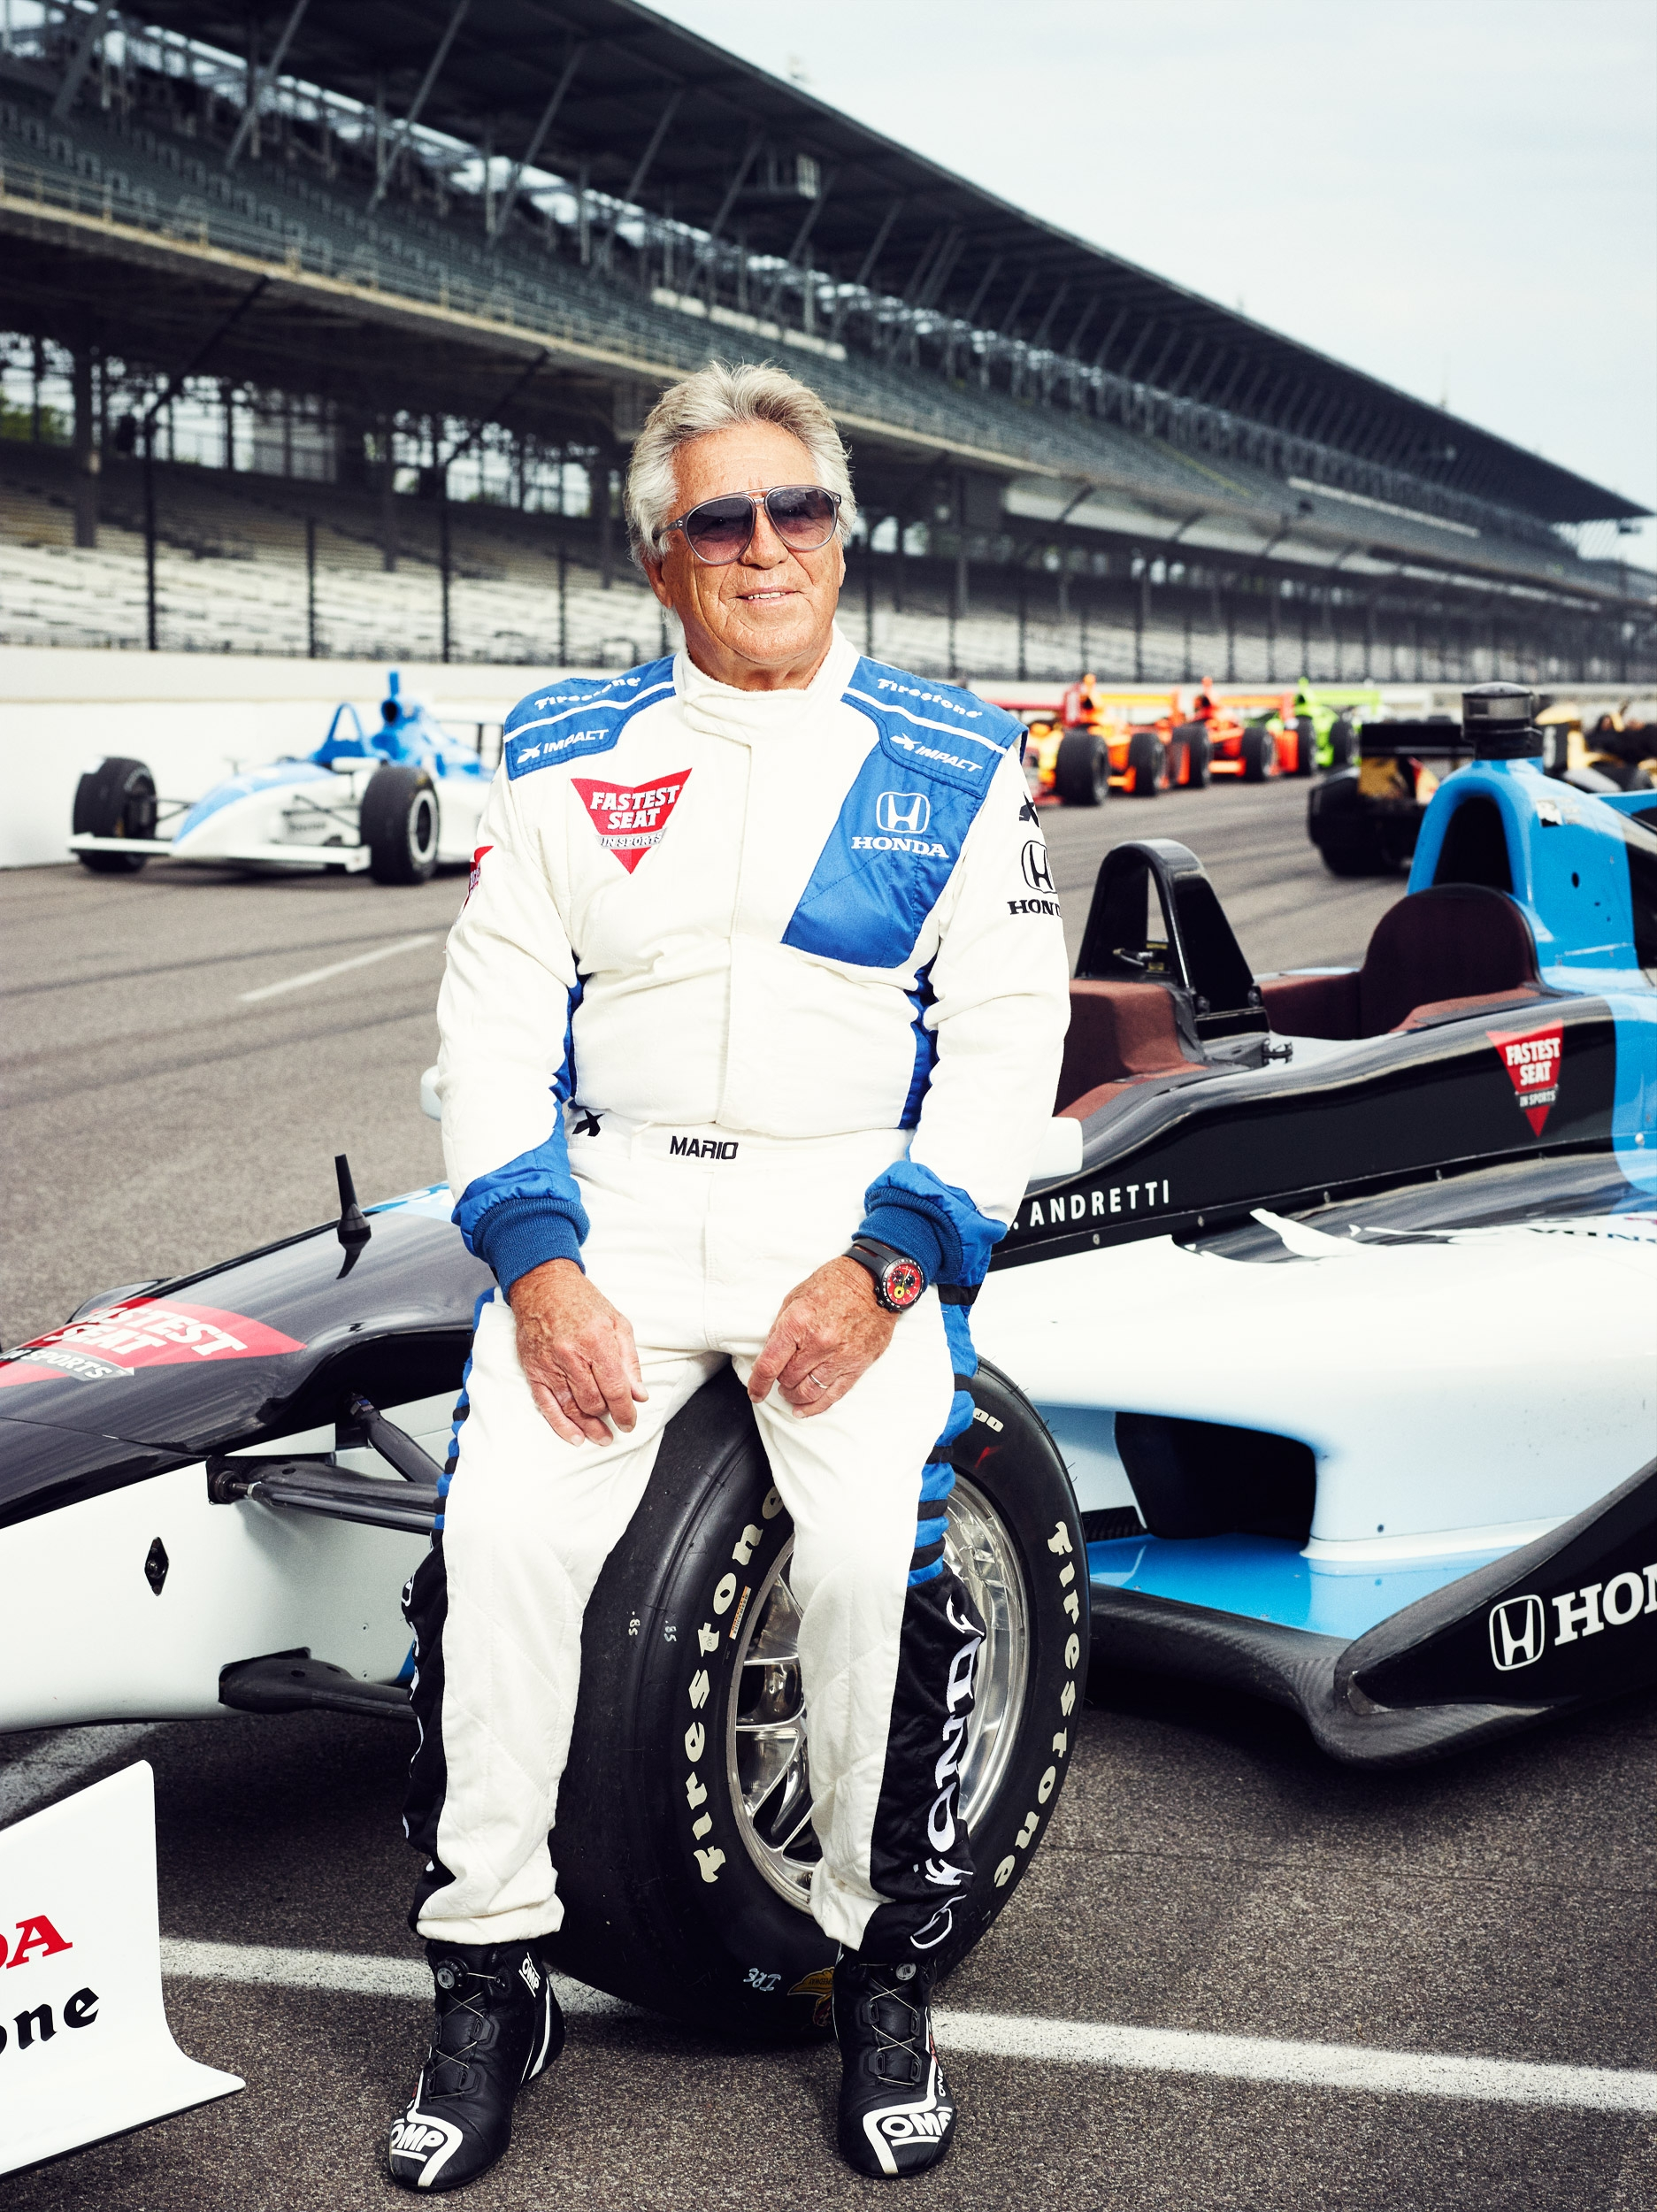 James-Farrell-Photo-MarioAndretti-Indy500-26.jpg